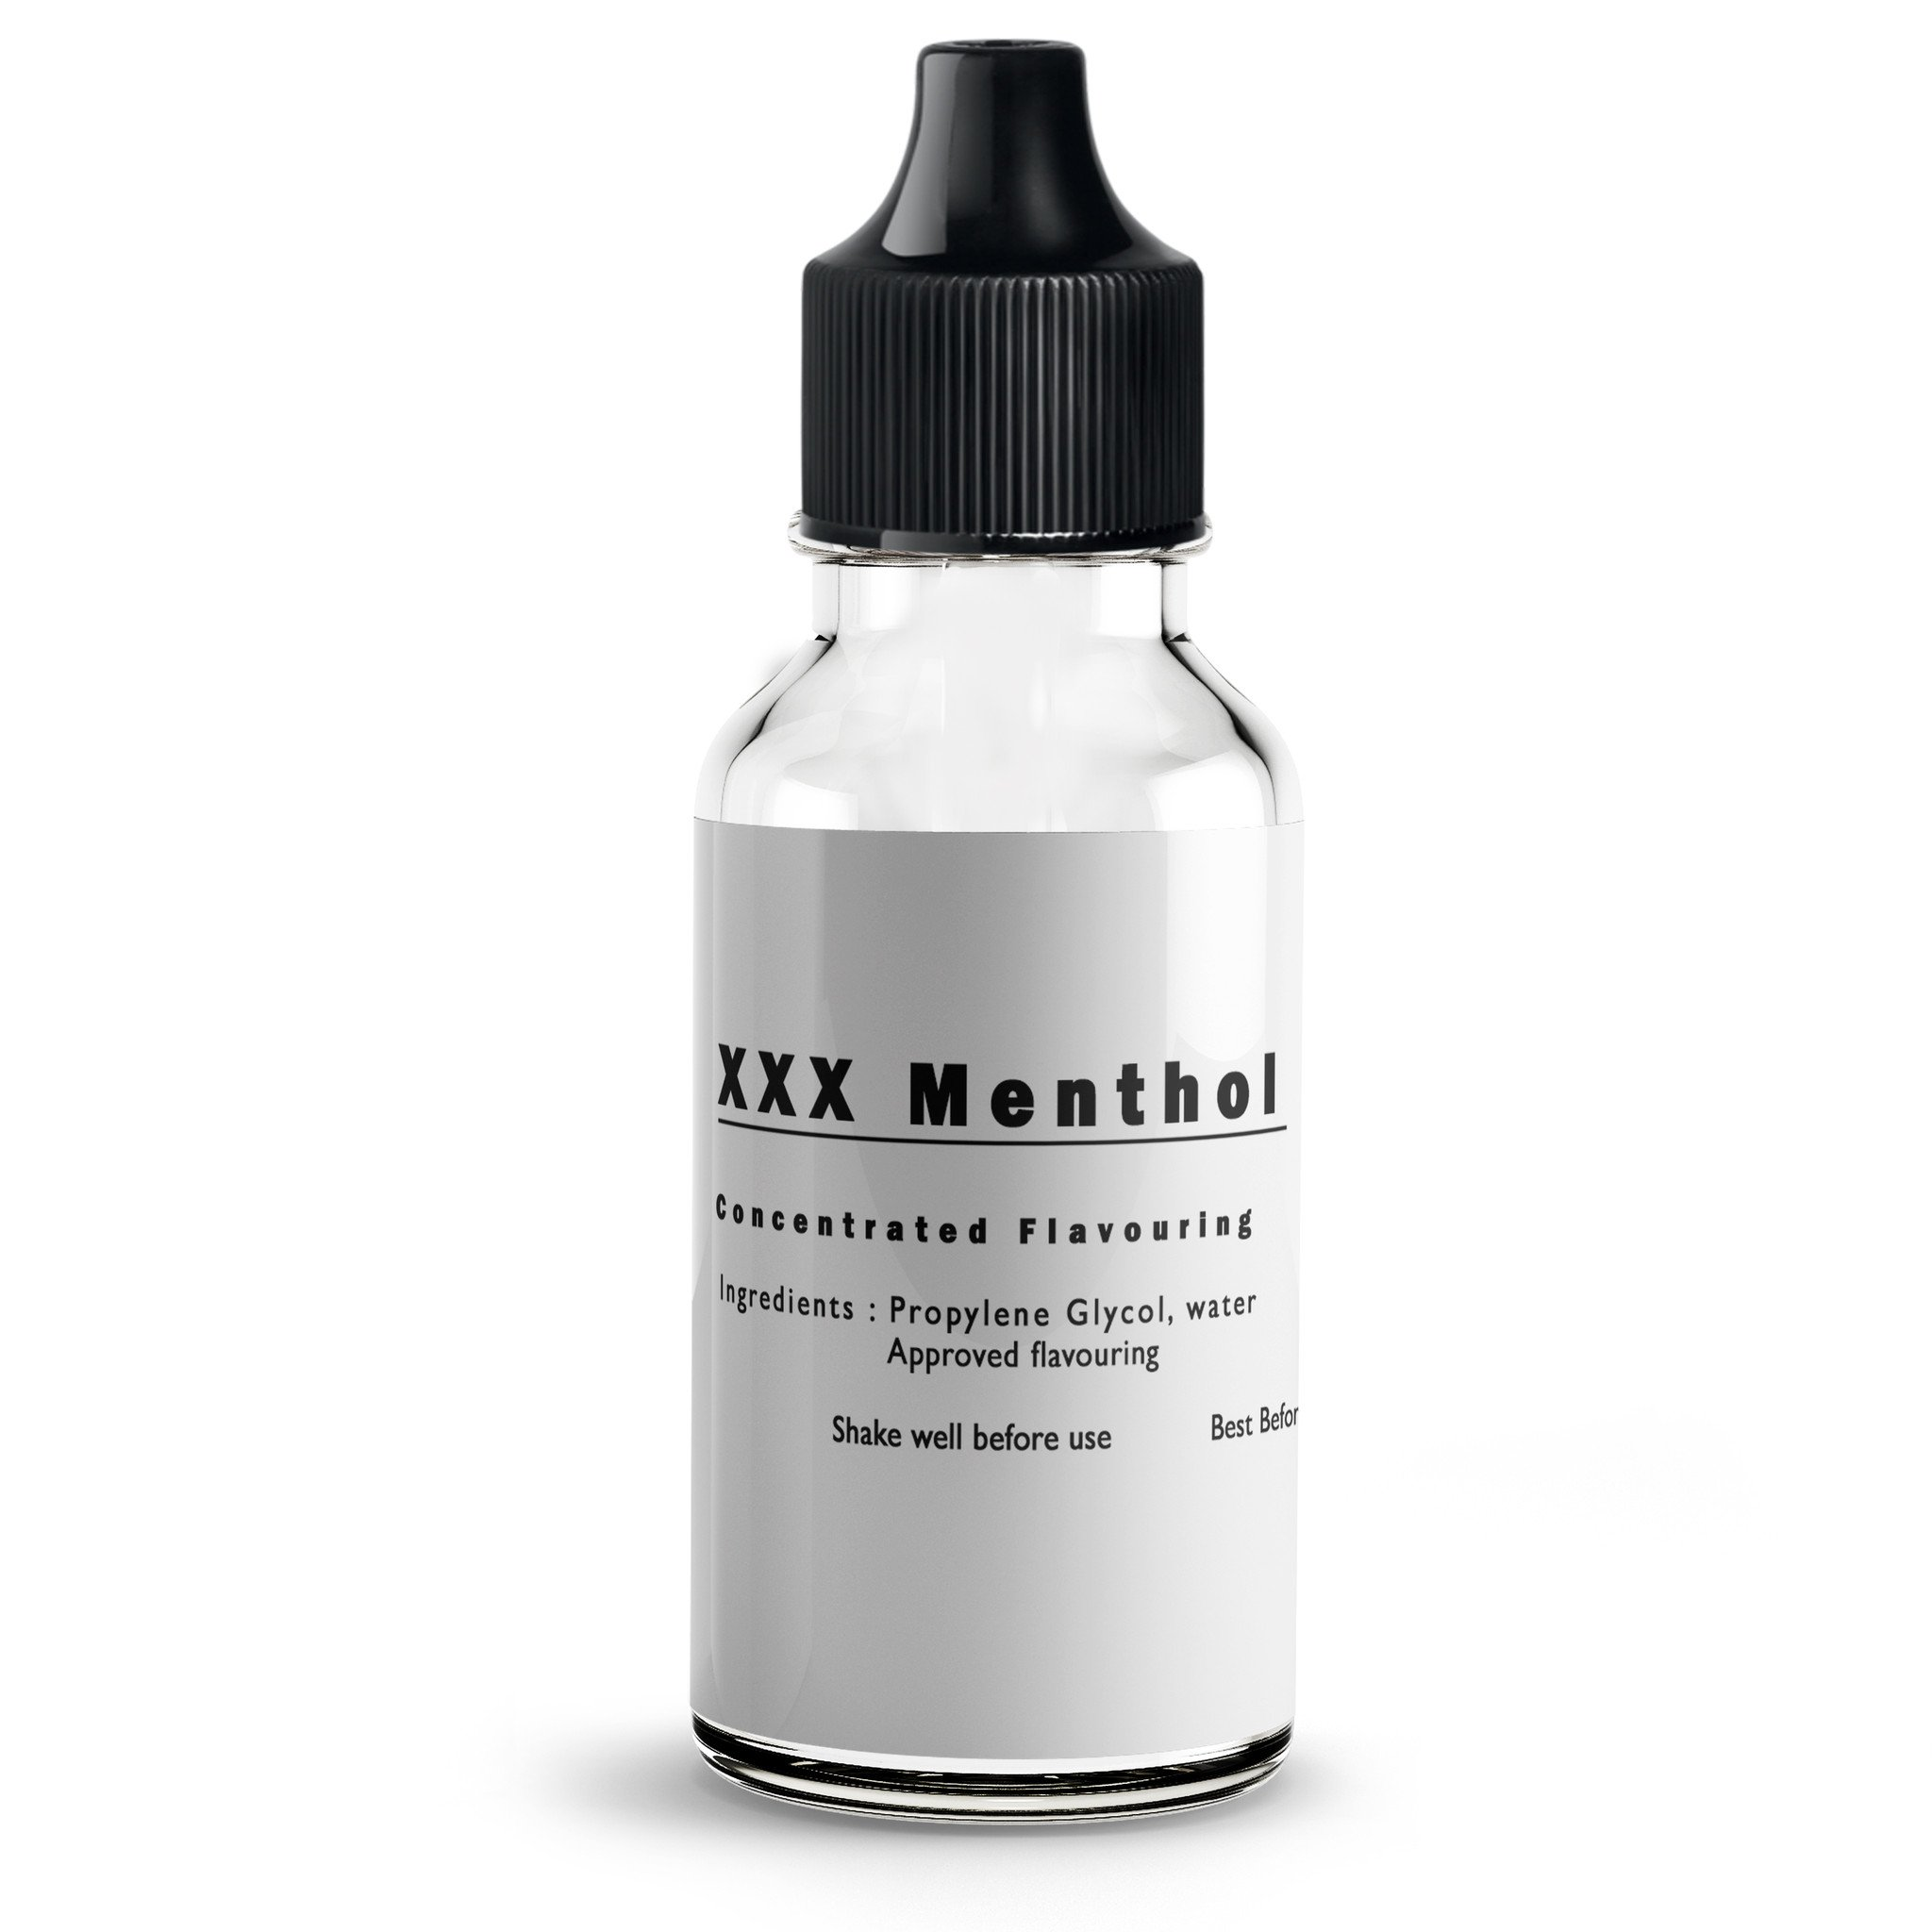 XXX Menthol Flavour Concentrate For E liquids